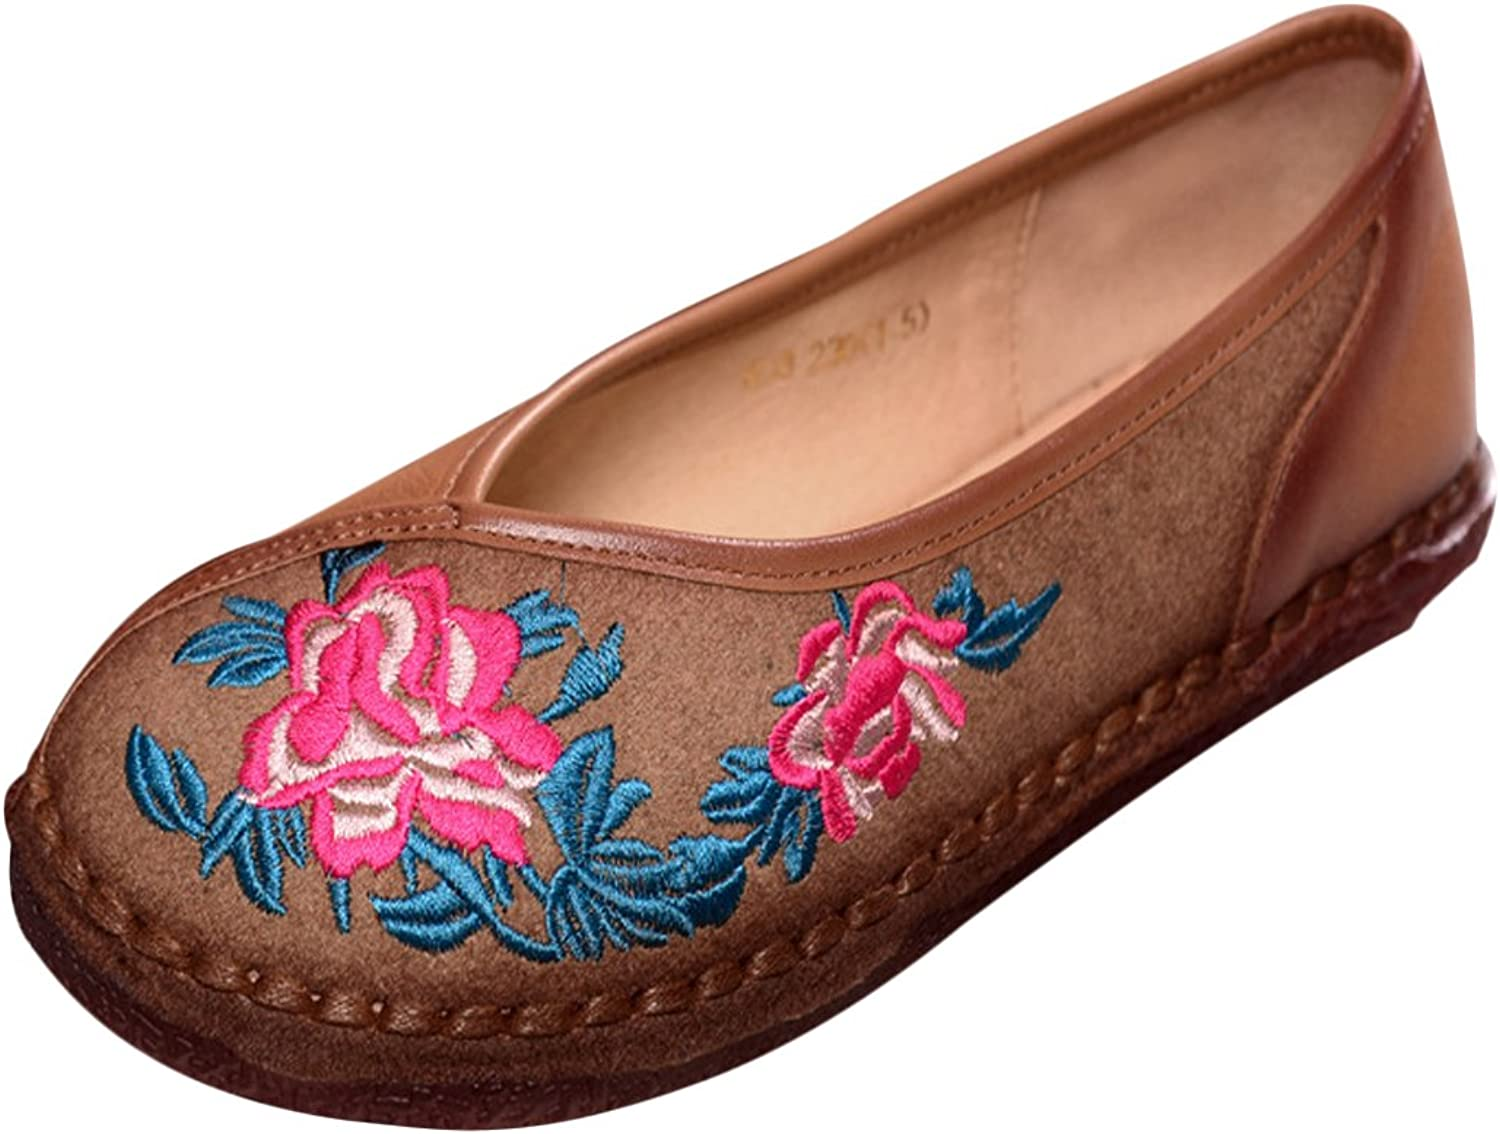 LIVEINU Women's Embroidery Sewing Flat shoes,Handmade